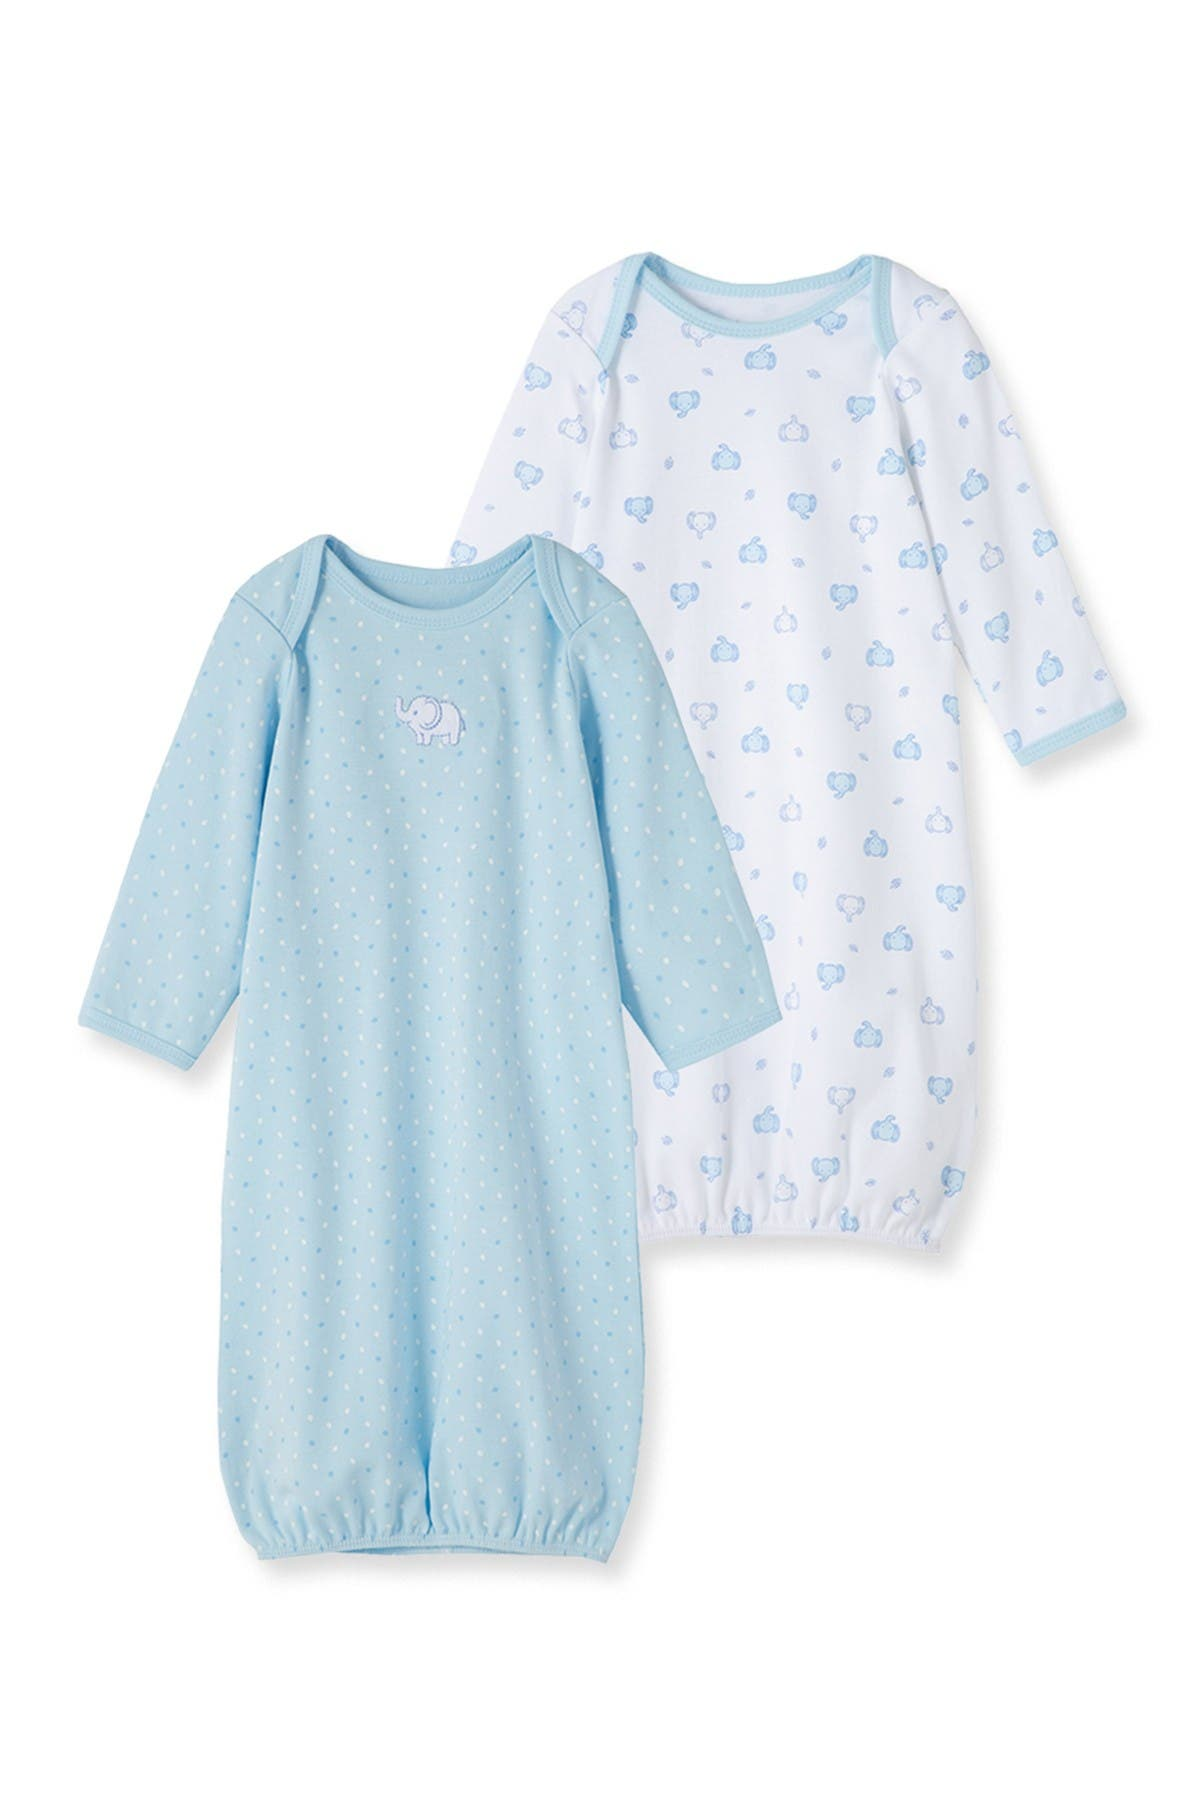 Image of Little Me Elephant Gown - Set of 2